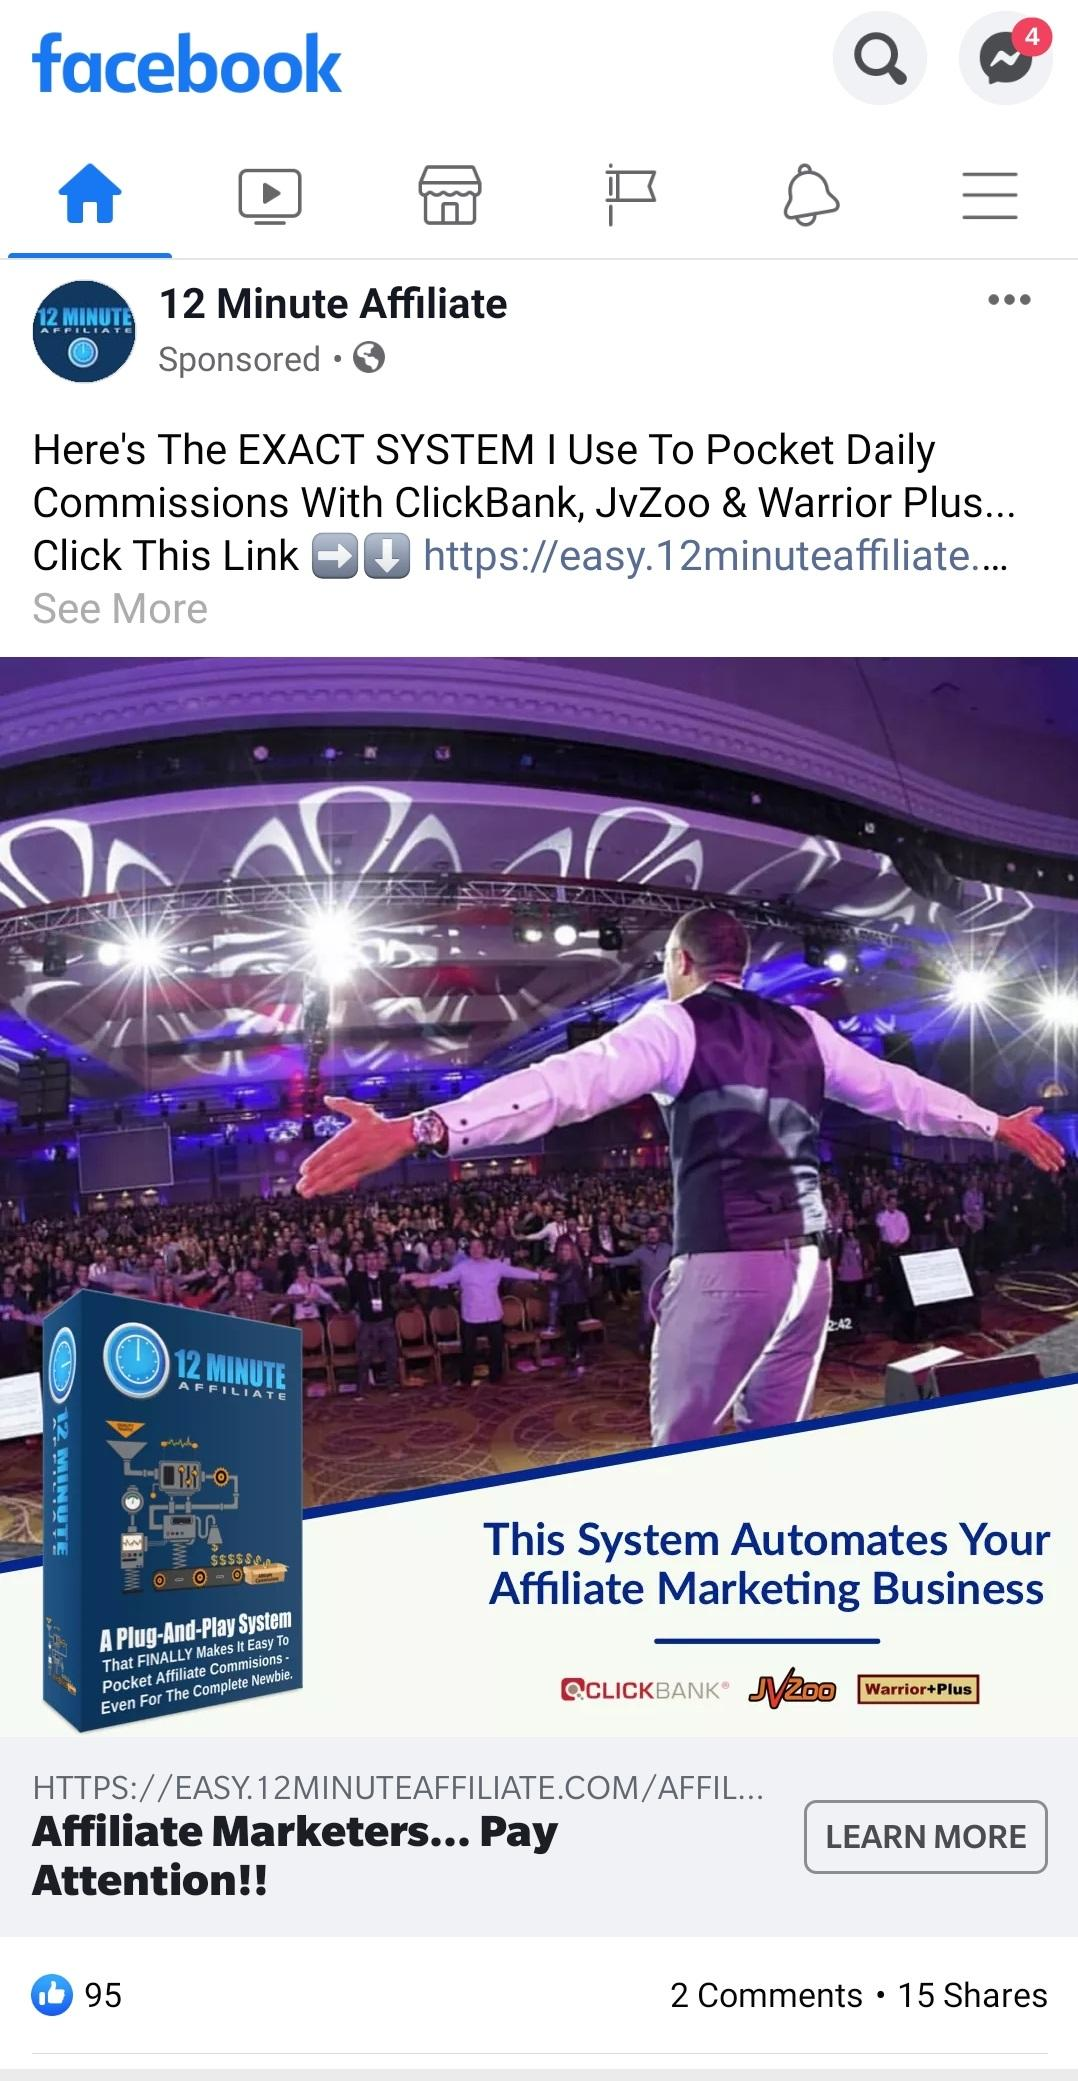 Rapid Facebook Ad by12 Minute Affiliate